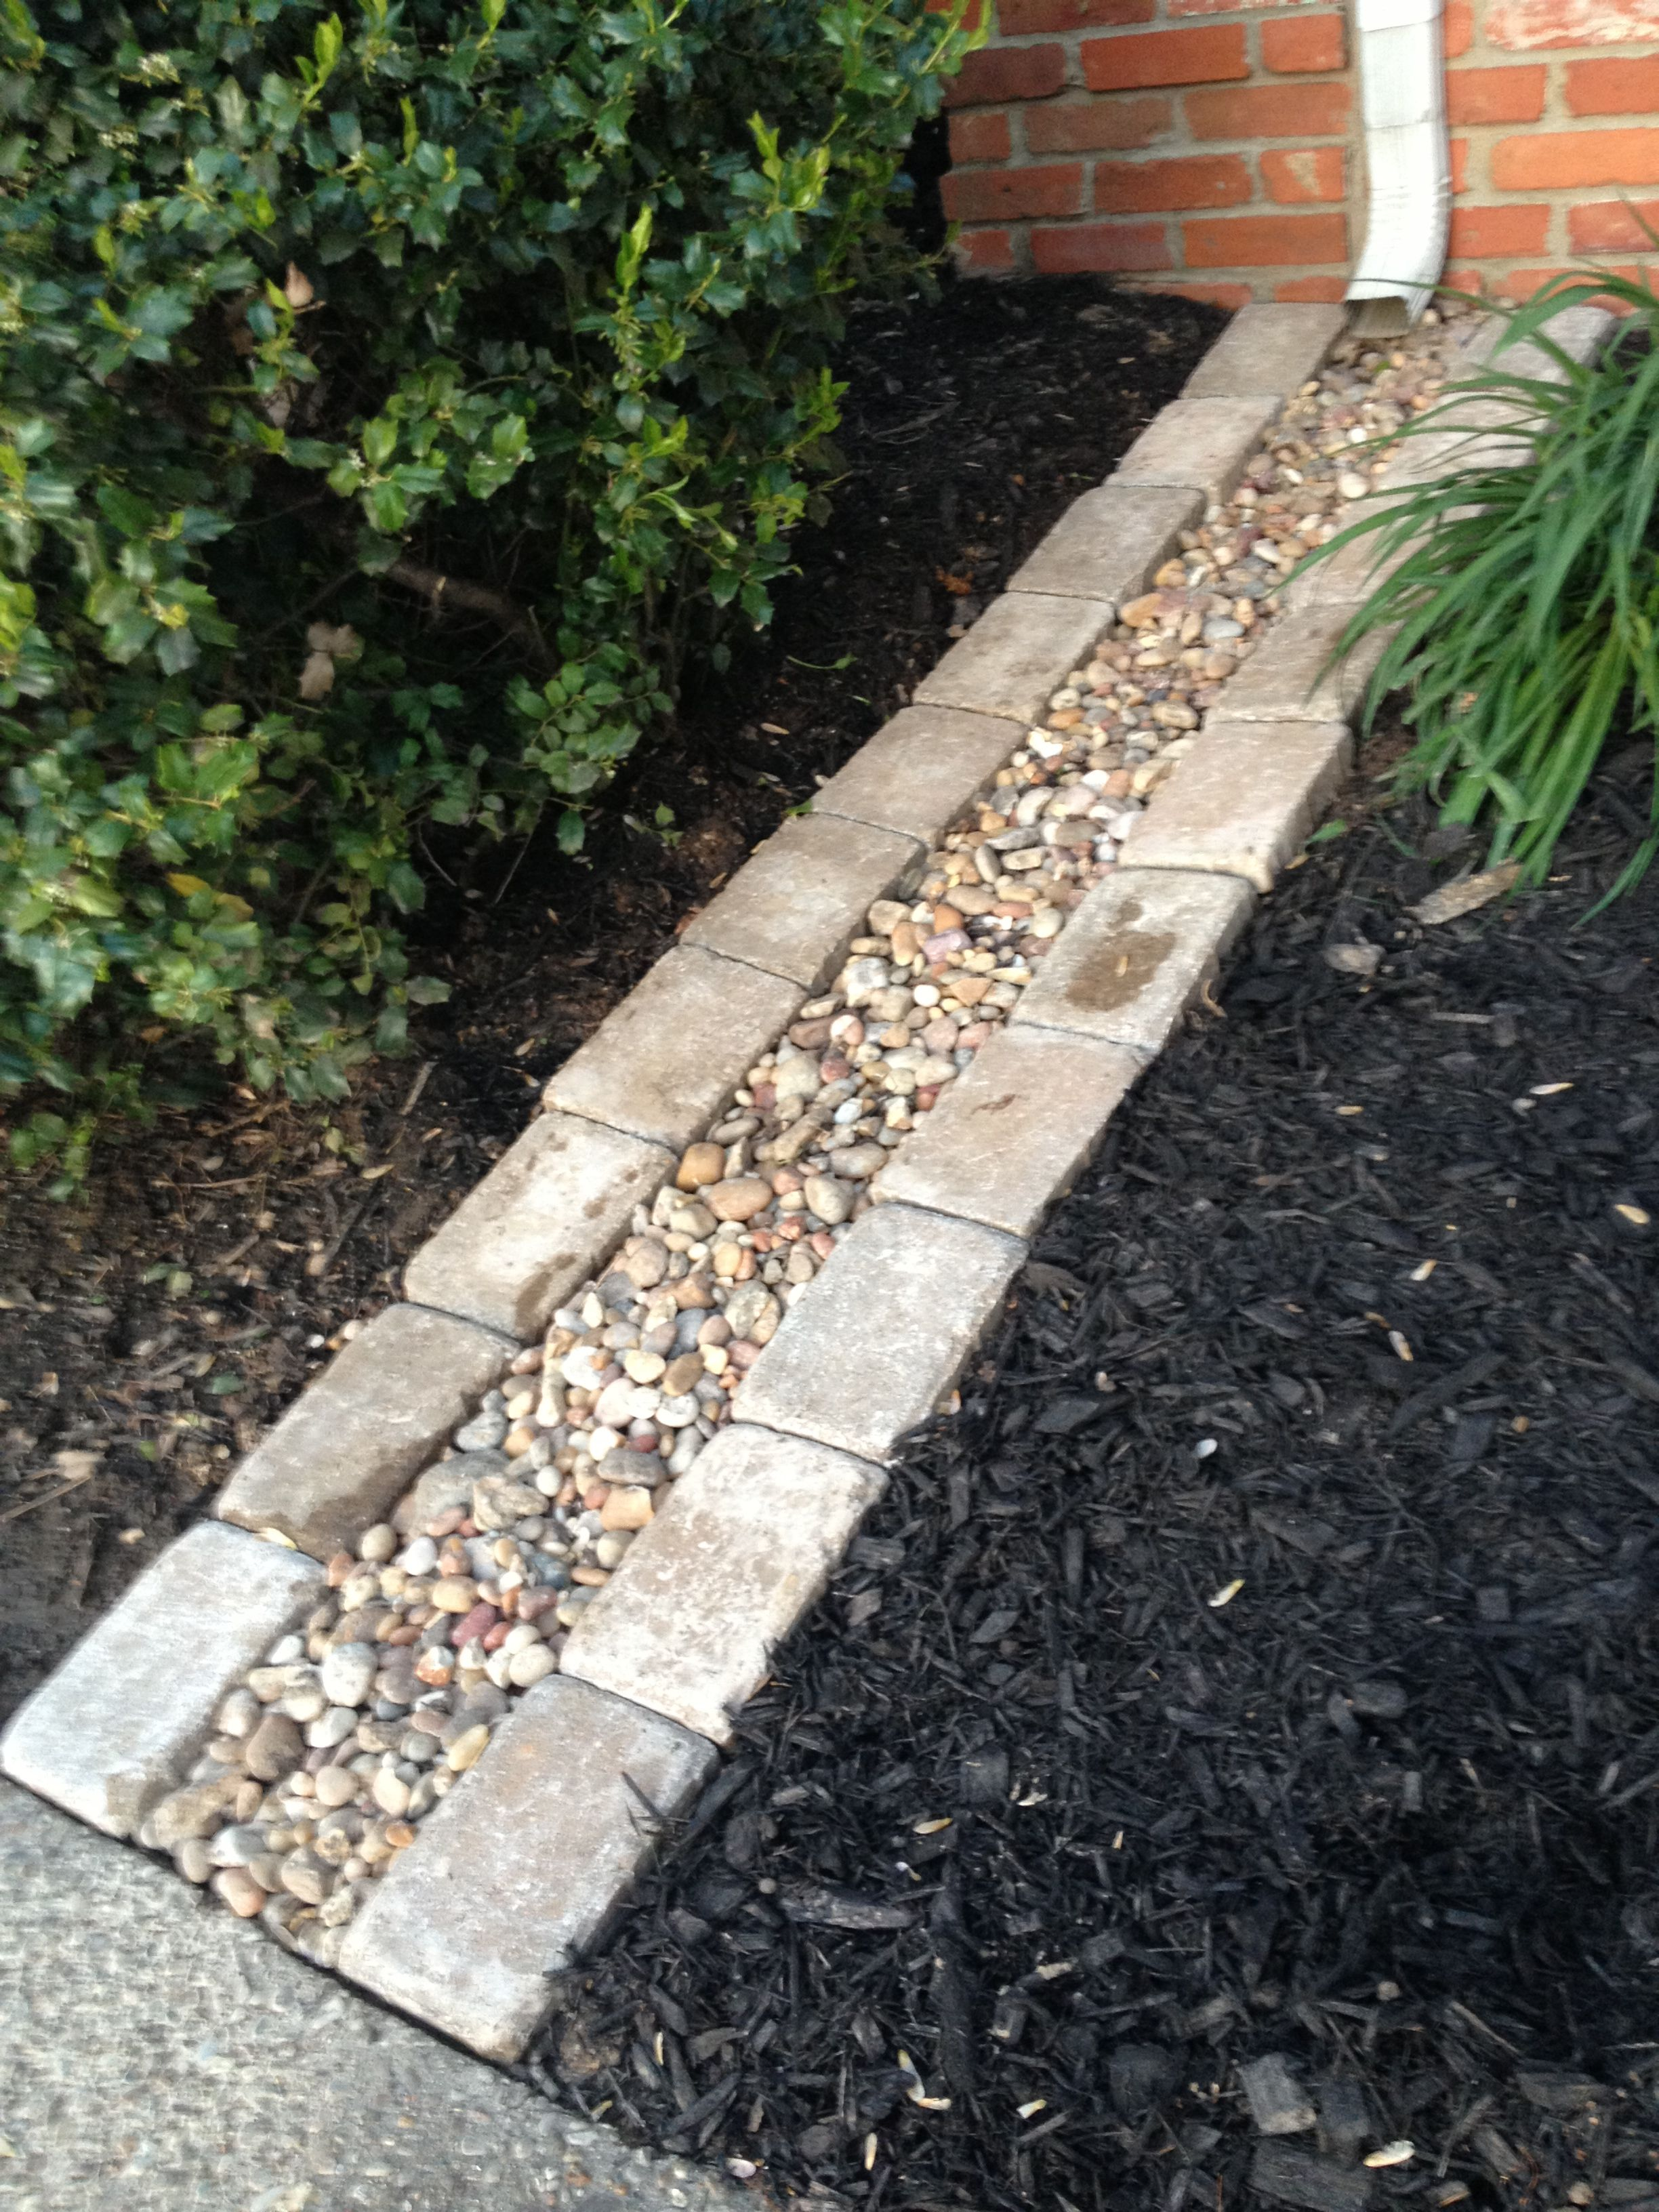 Down Spout Rock Drain Add Plastic Under The Rocks So You Dont Saturate The Ground Near Your Foundation Http Pinterest Com Pin 422001427560438882 Outdoor Landscaping Backyard Landscaping Lawn And Garden